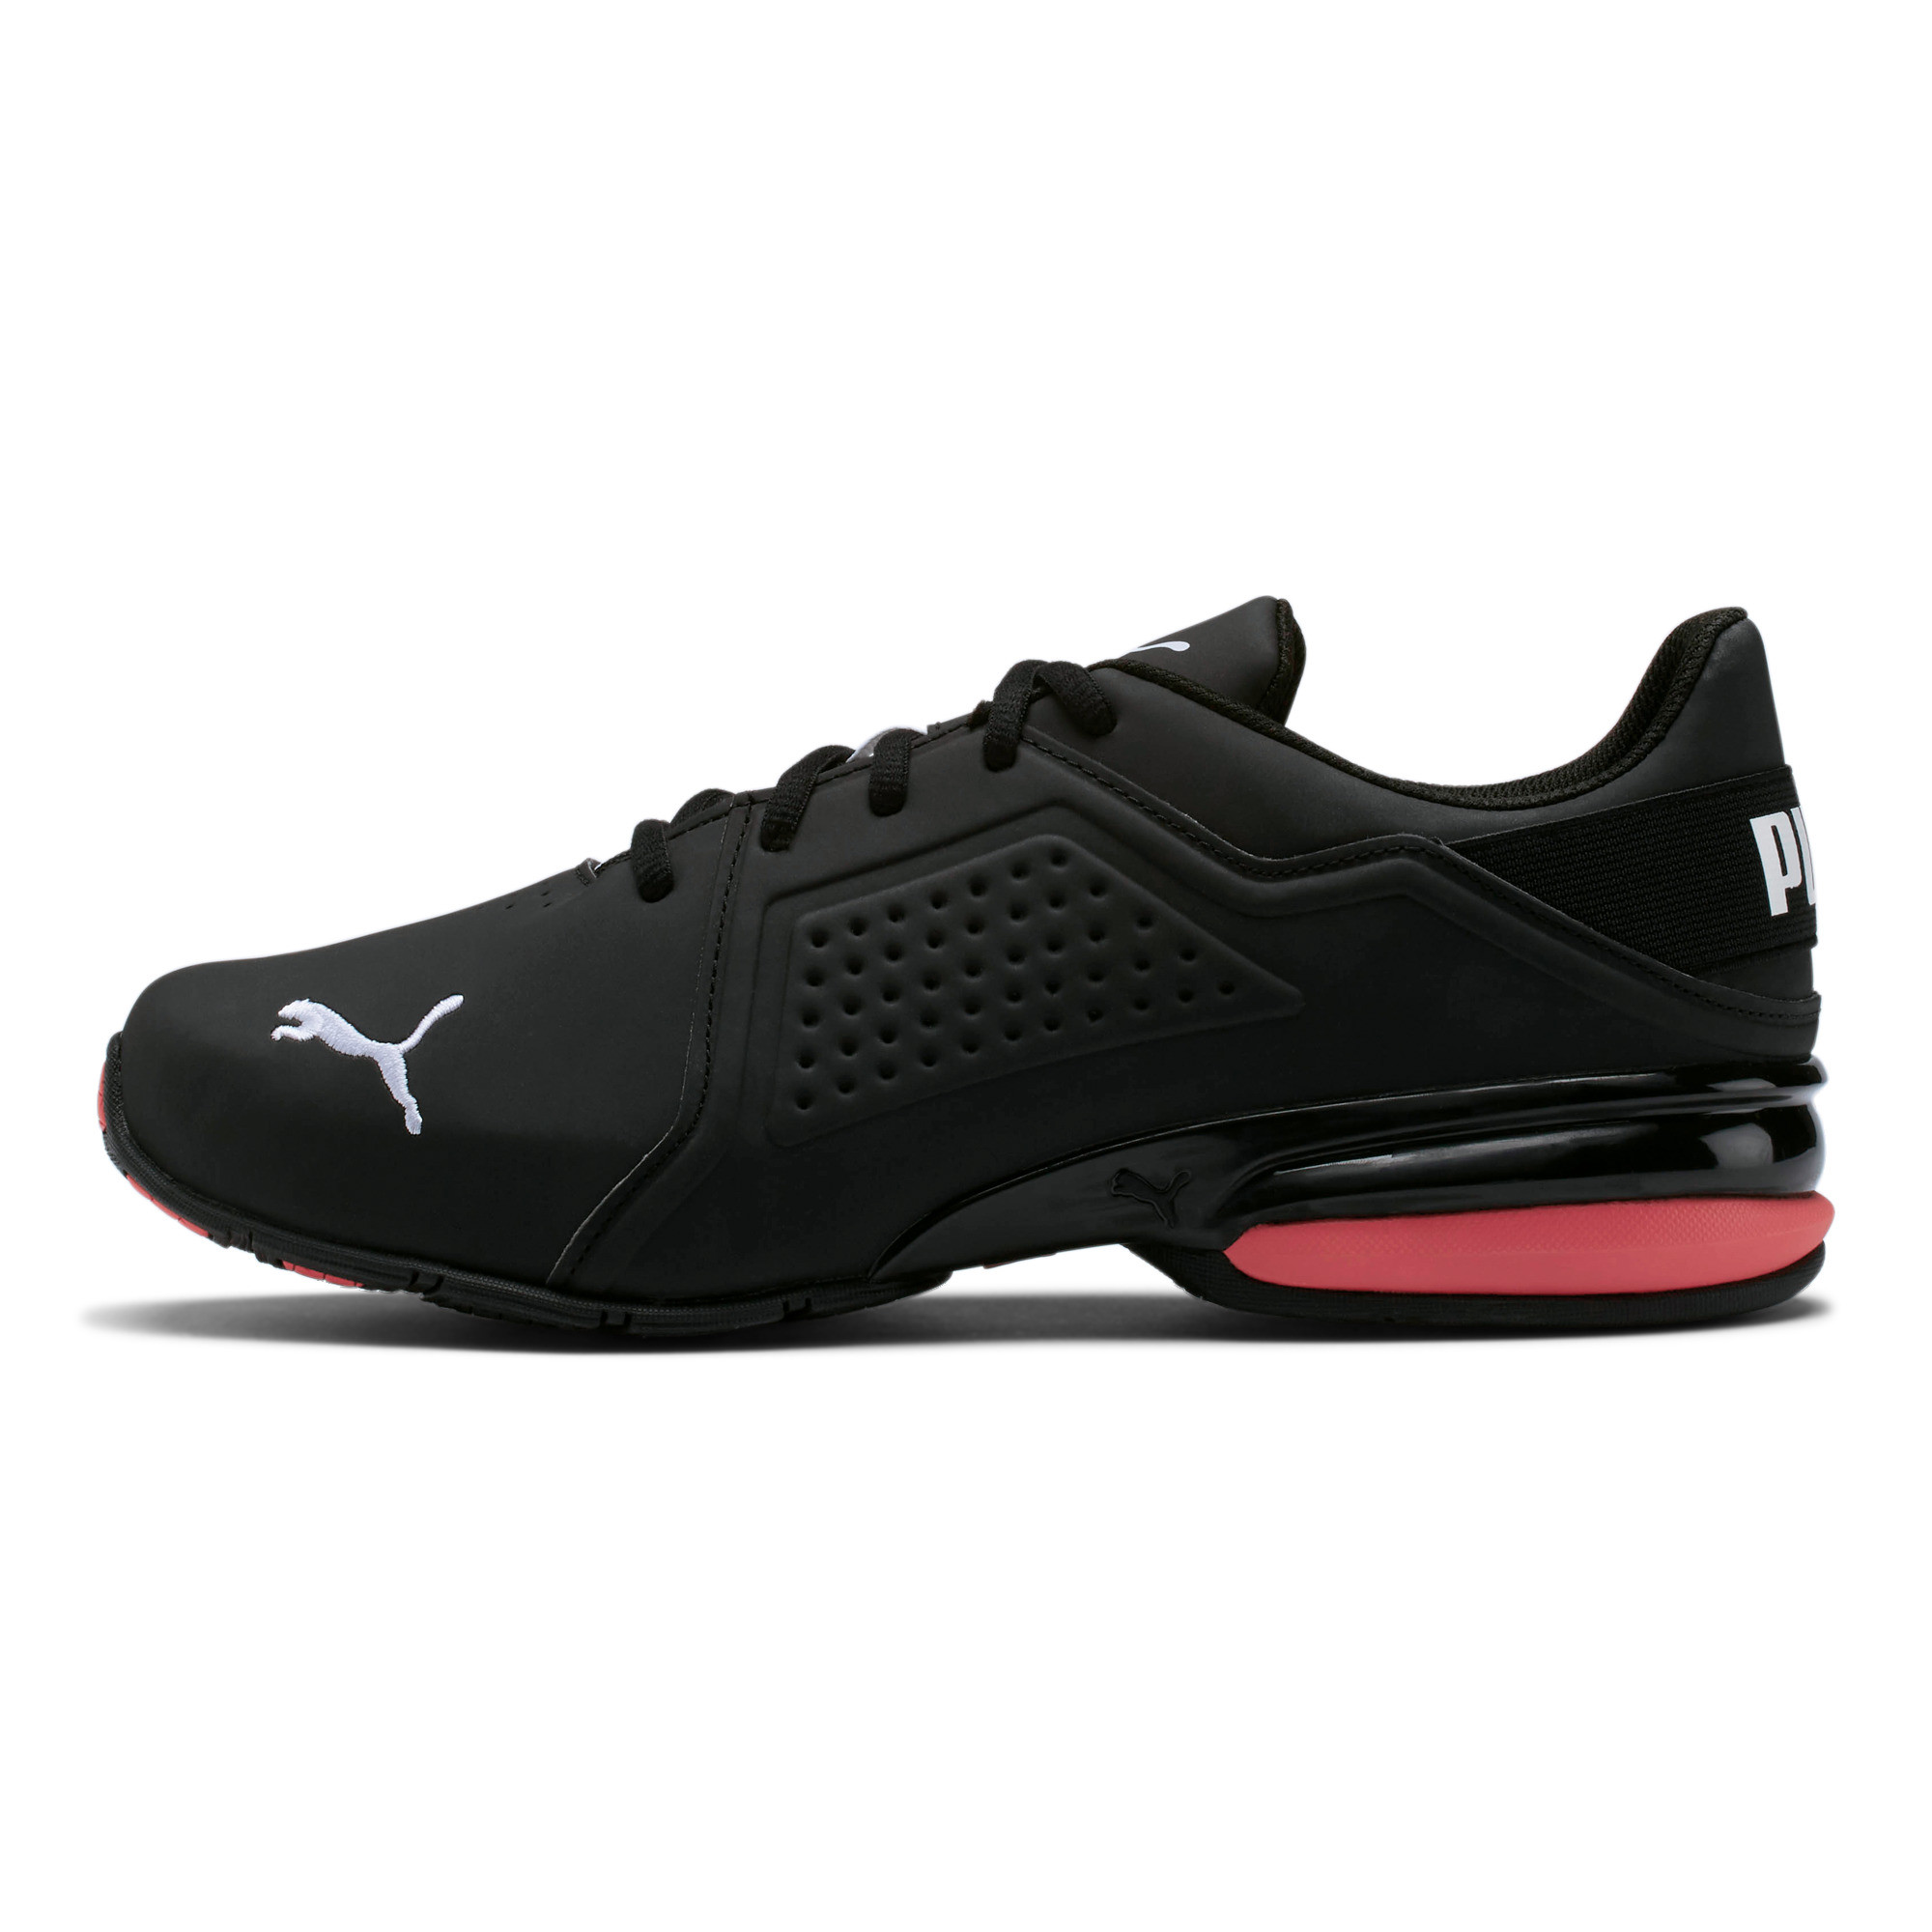 PUMA-Viz-Runner-Men-s-Running-Shoes-Men-Shoe-Running thumbnail 4